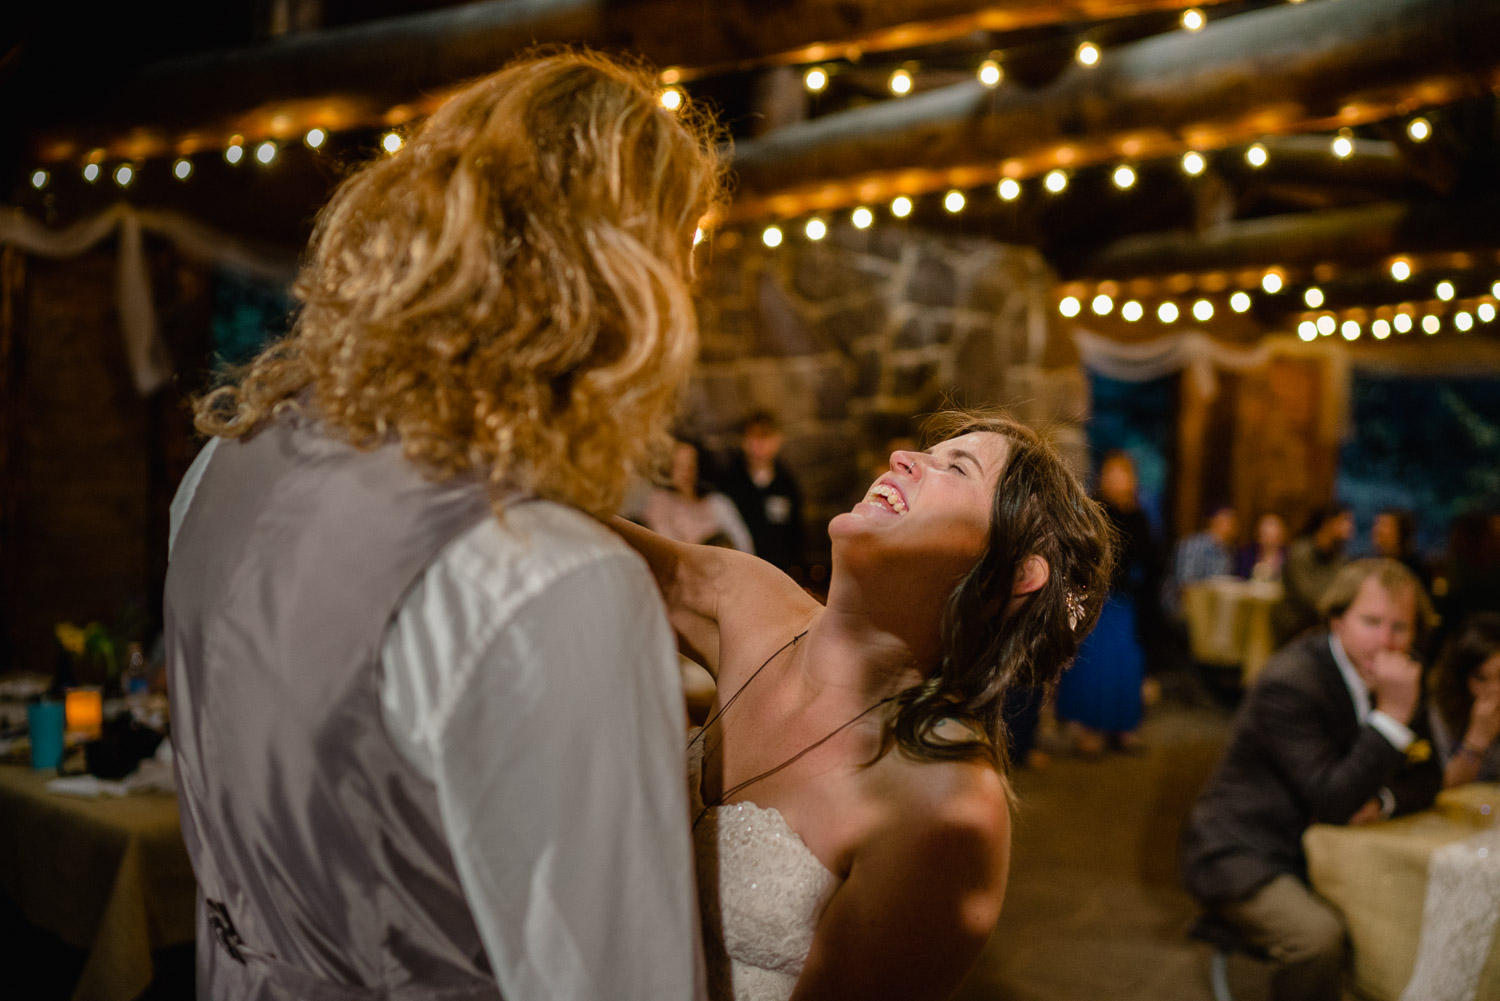 bride and groom dancing and laughing with lights at night campground reception